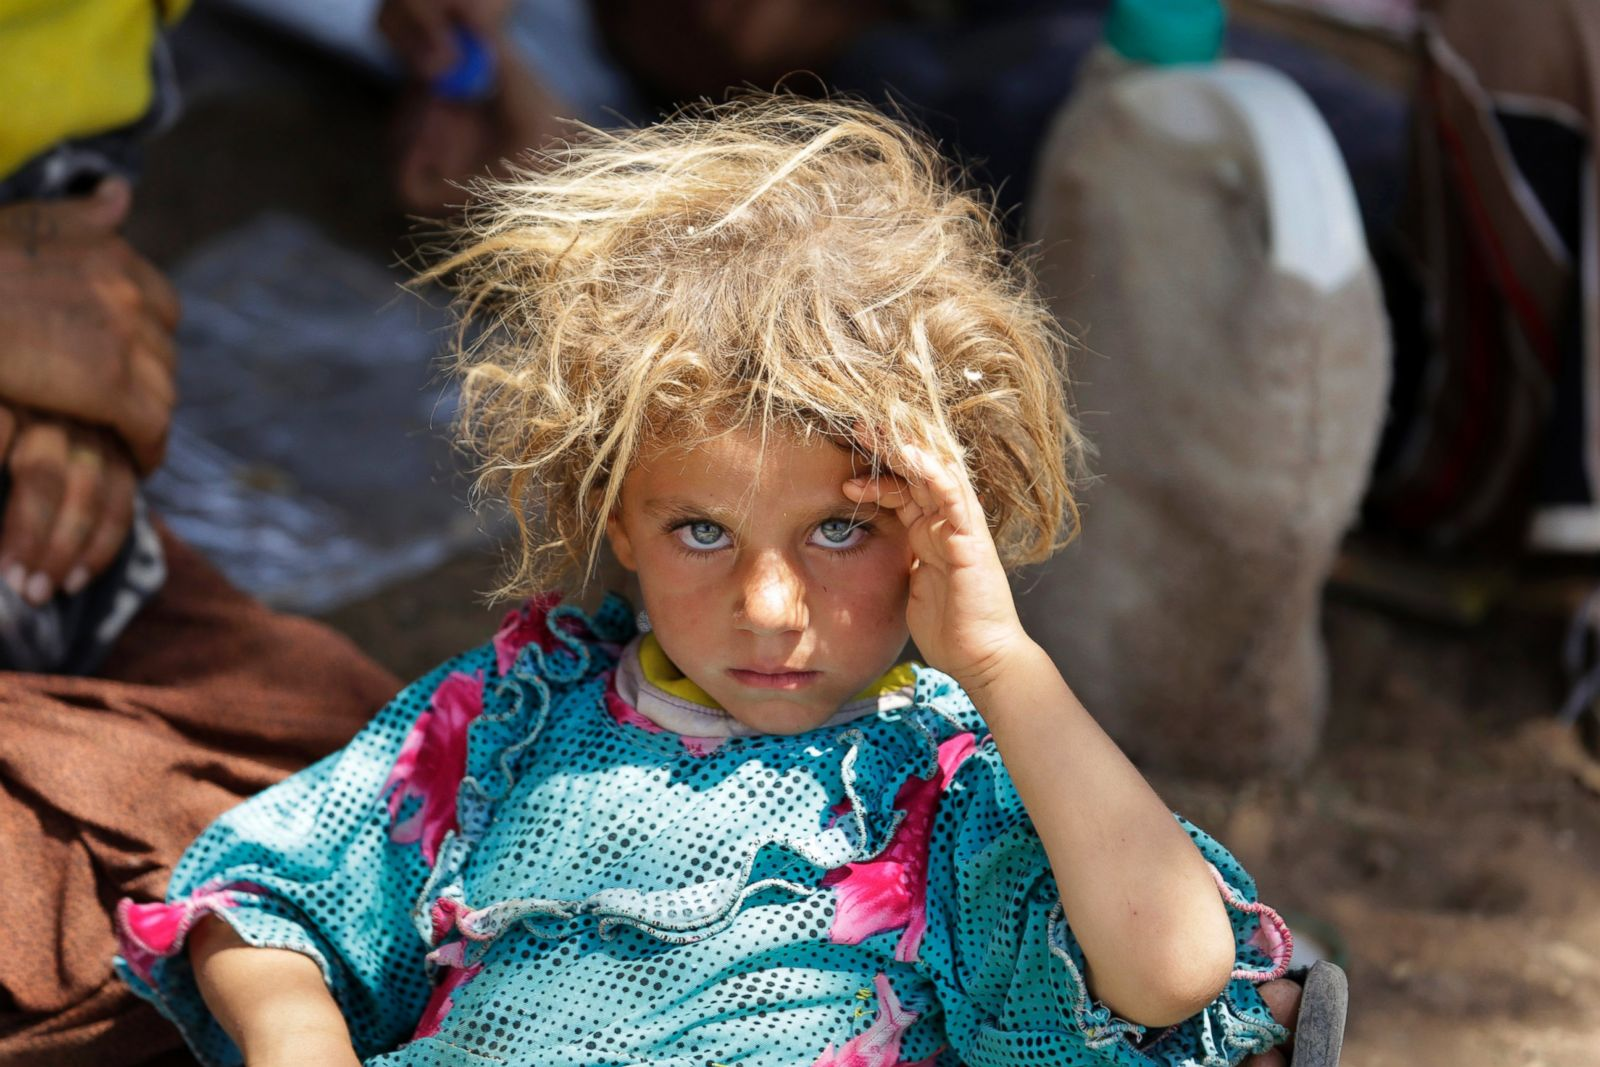 RT_yazidi_girl_refugee_jt_150620_3x2_1600